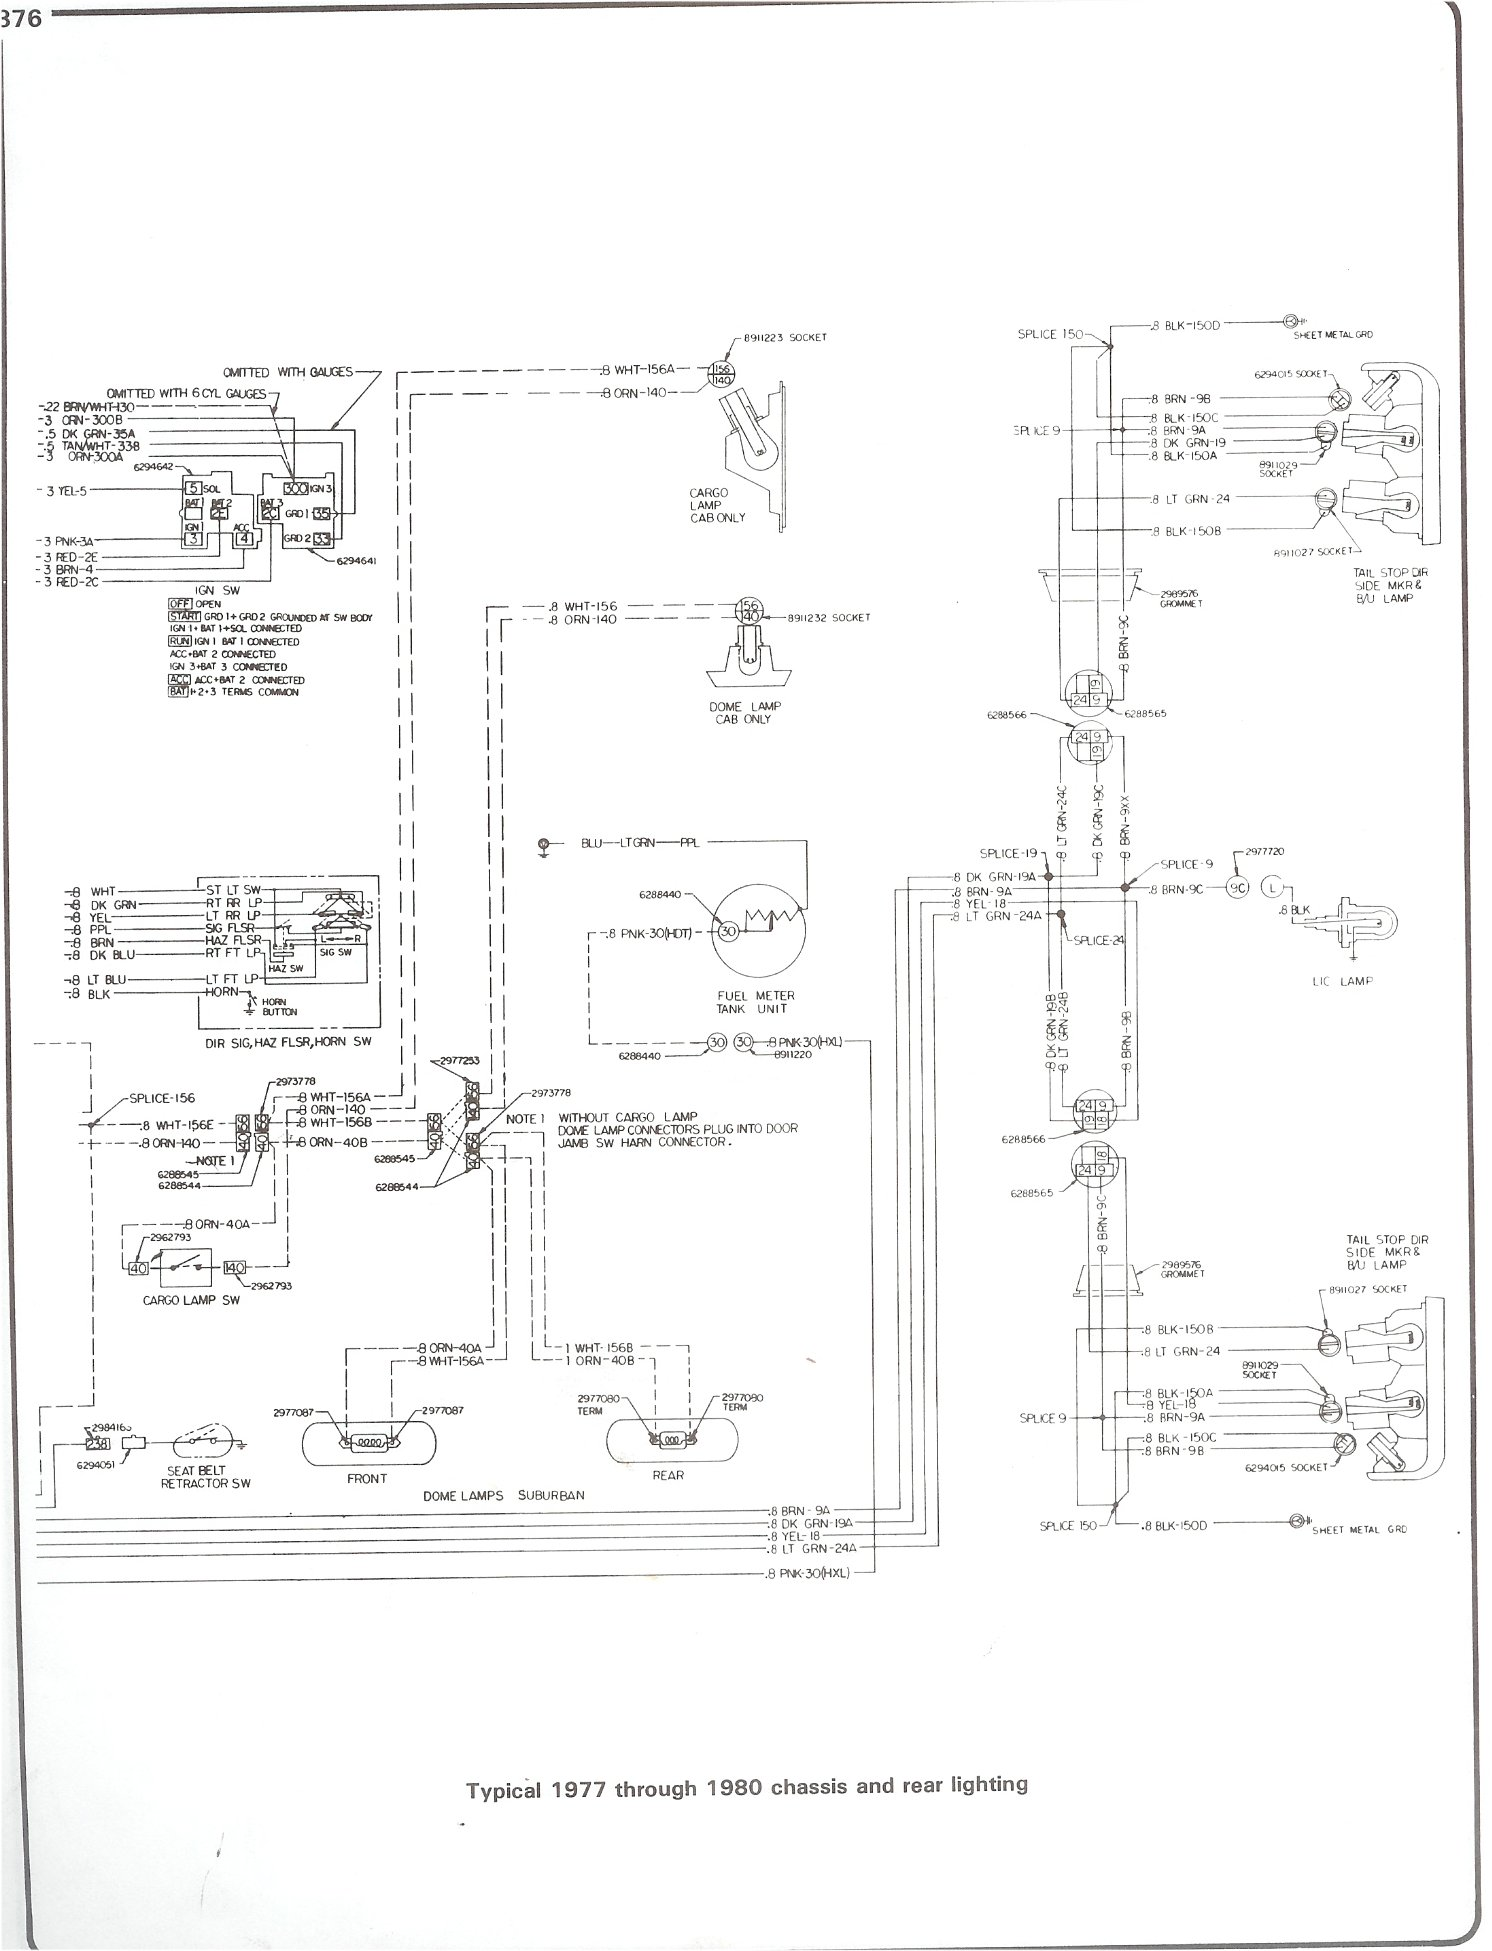 hight resolution of 77 80 chassis and rear lighting complete 73 87 wiring diagrams 77 80 chassis and rear lighting 1982 g30 van